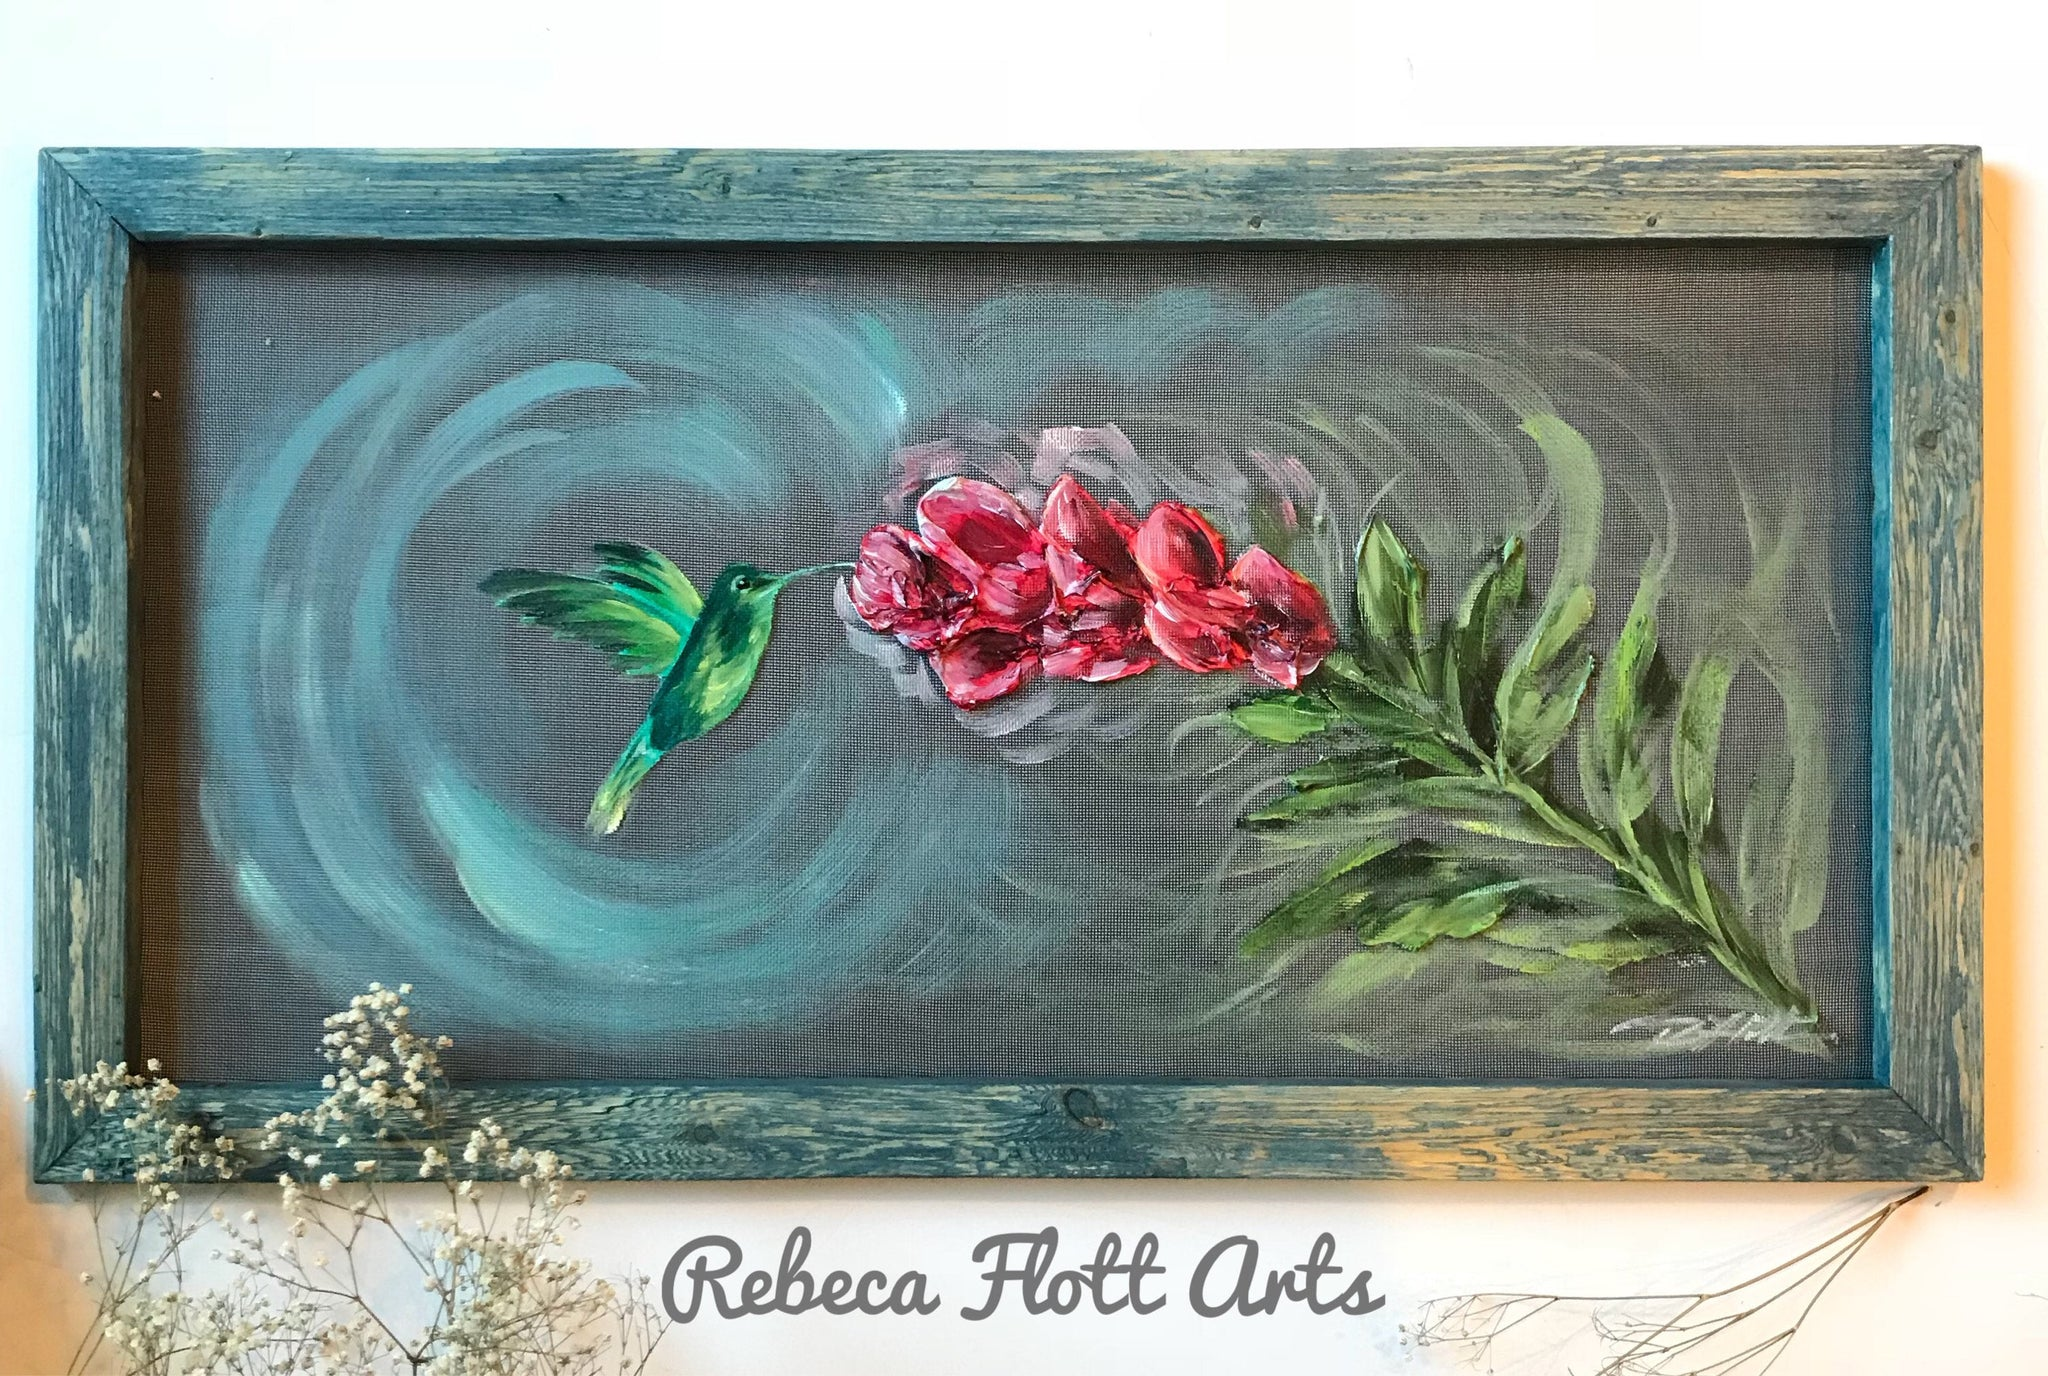 Hummingbird Painting wall ,hand painted hummingbird,window screen art,porch decor,spring decor,outdoor decor